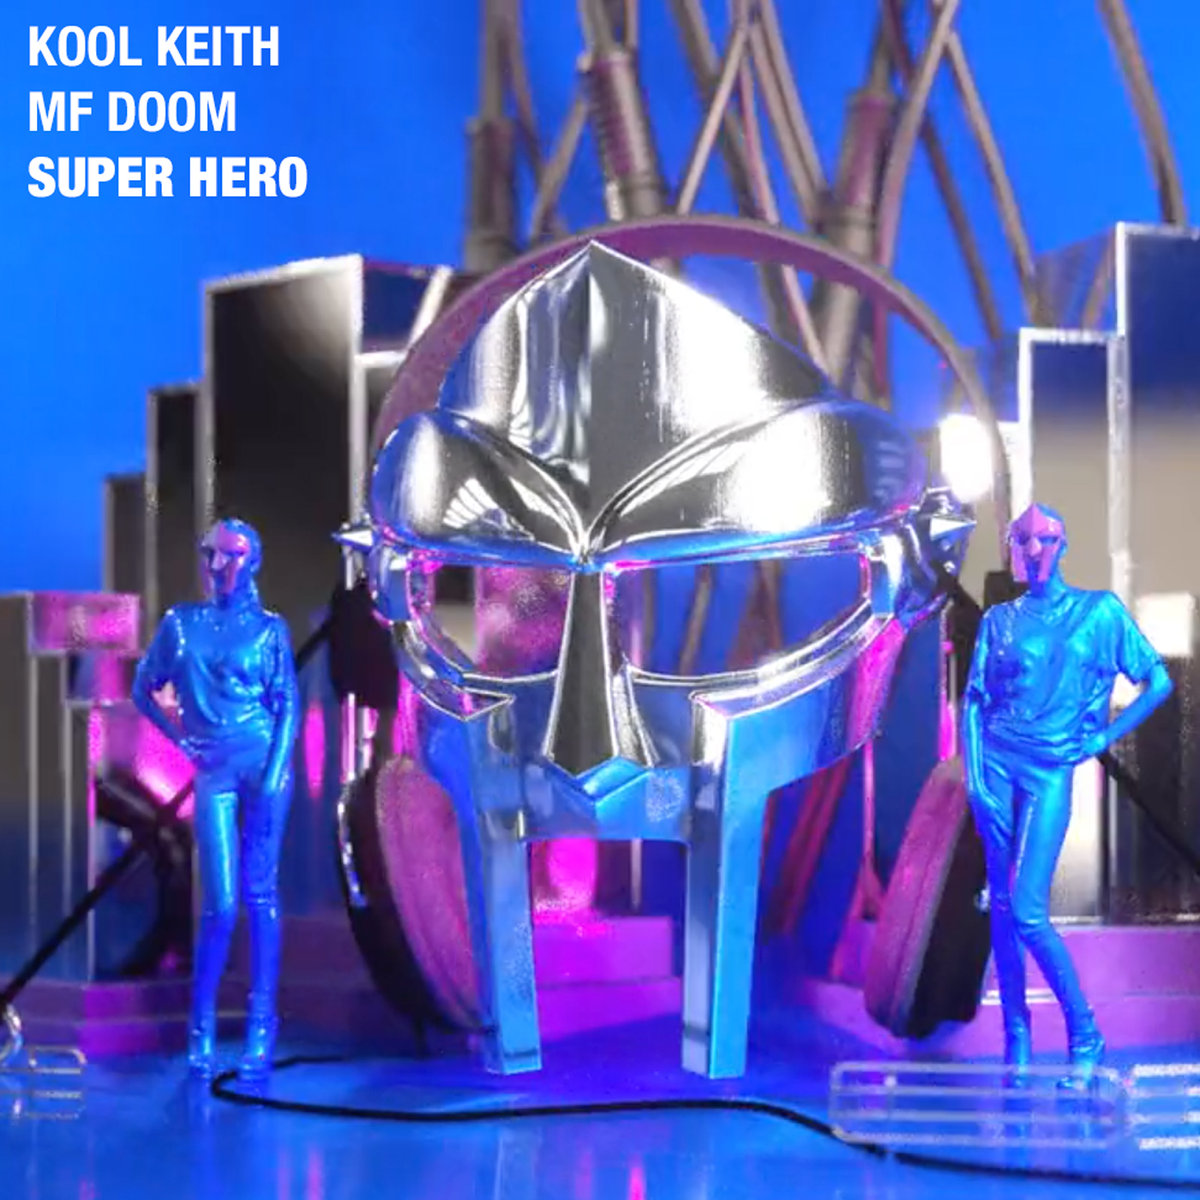 KOOL KEITH (FEAT. MF DOOM) : SUPER HERO (FREE DOWNLOAD)